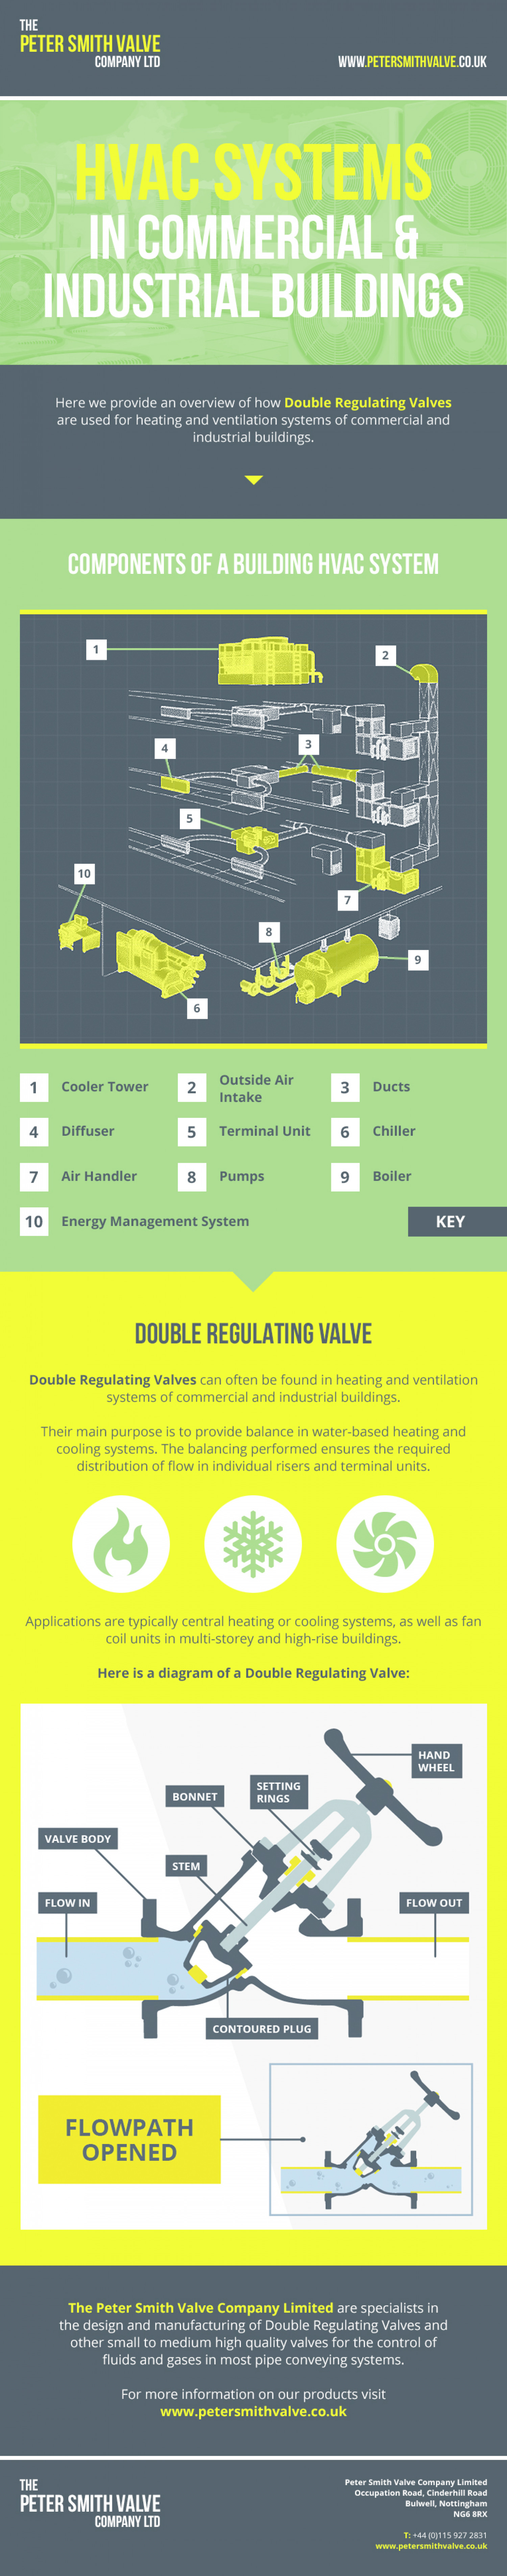 HVAC Systems in Commercial & Industrial Buildings Infographic